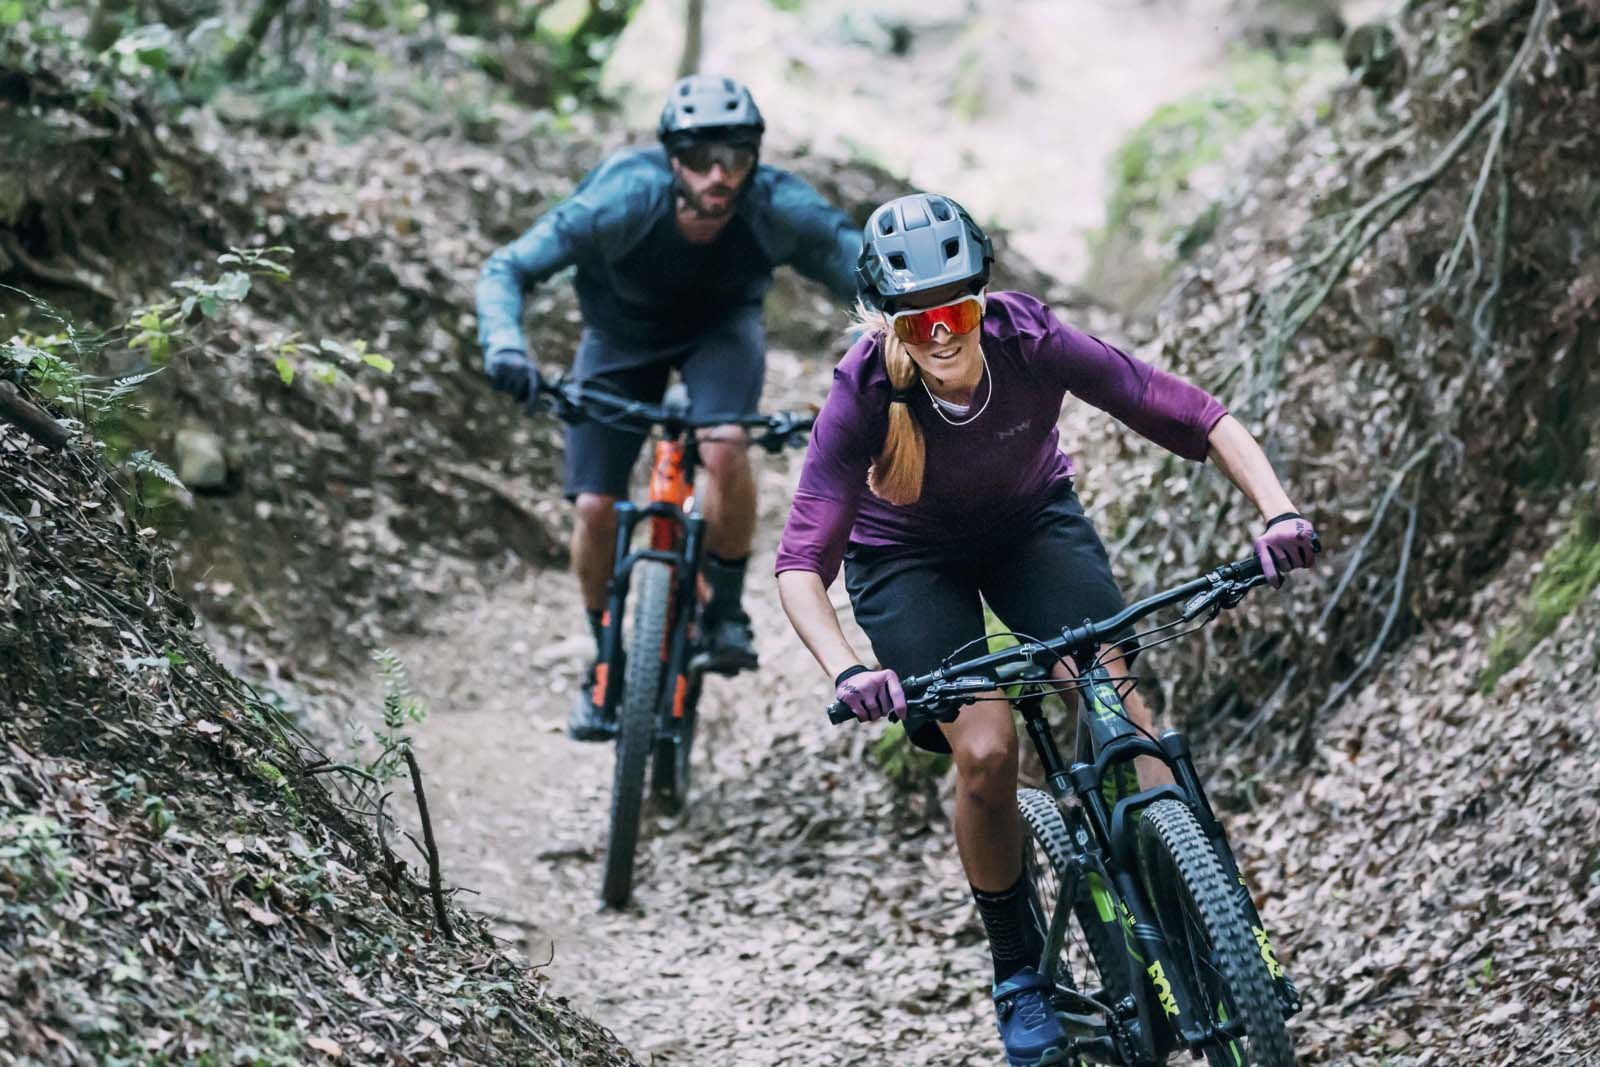 Northwave Presenta Su Nueva Colección De Ropa Para All Mountain Downhill Mountain Biking Bicycle Bike